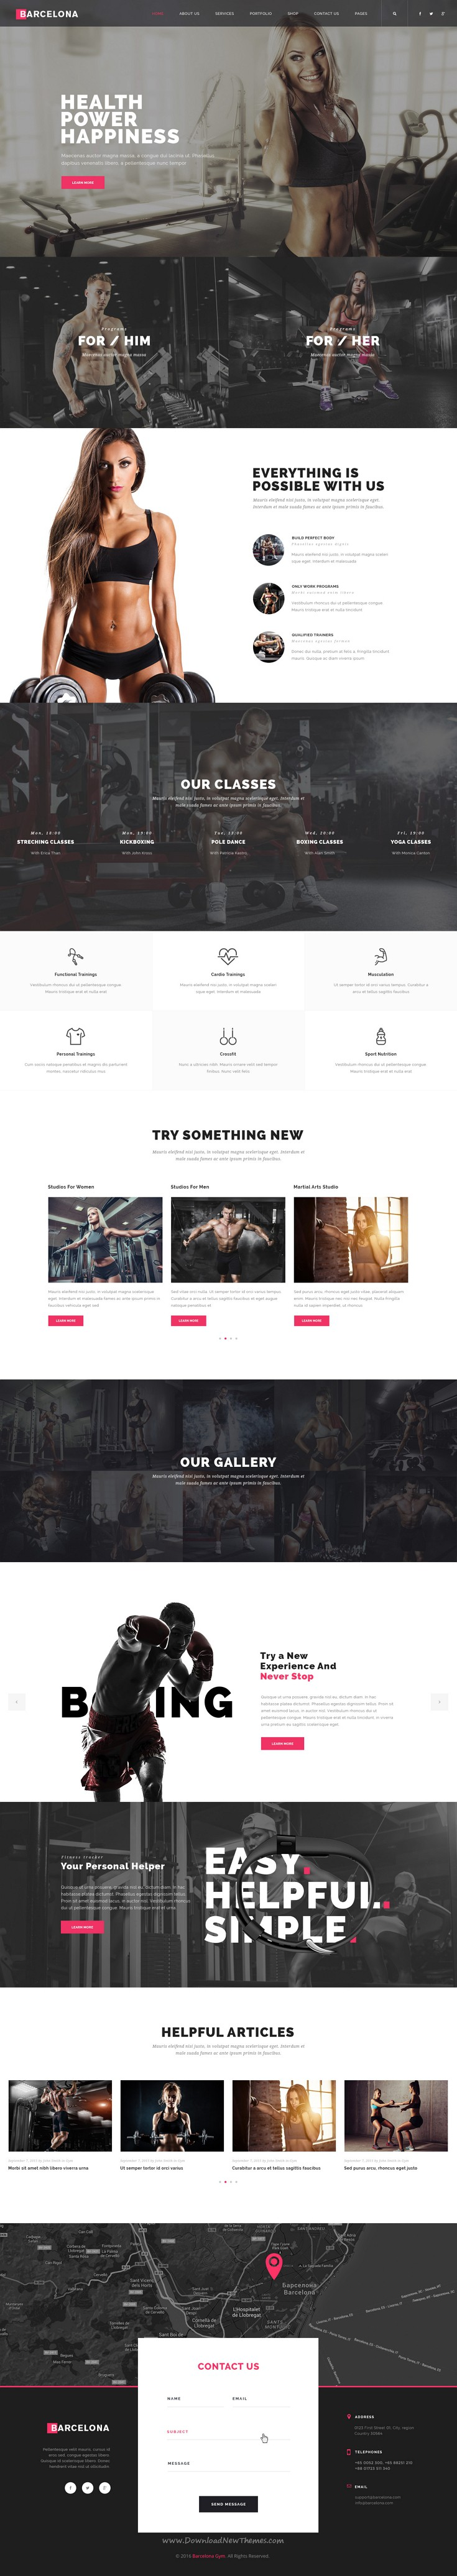 Barcelona is a powerful, modern and creative #PSD template for Sport and #Gyms, being suited as well for other similar type of businesses #website.